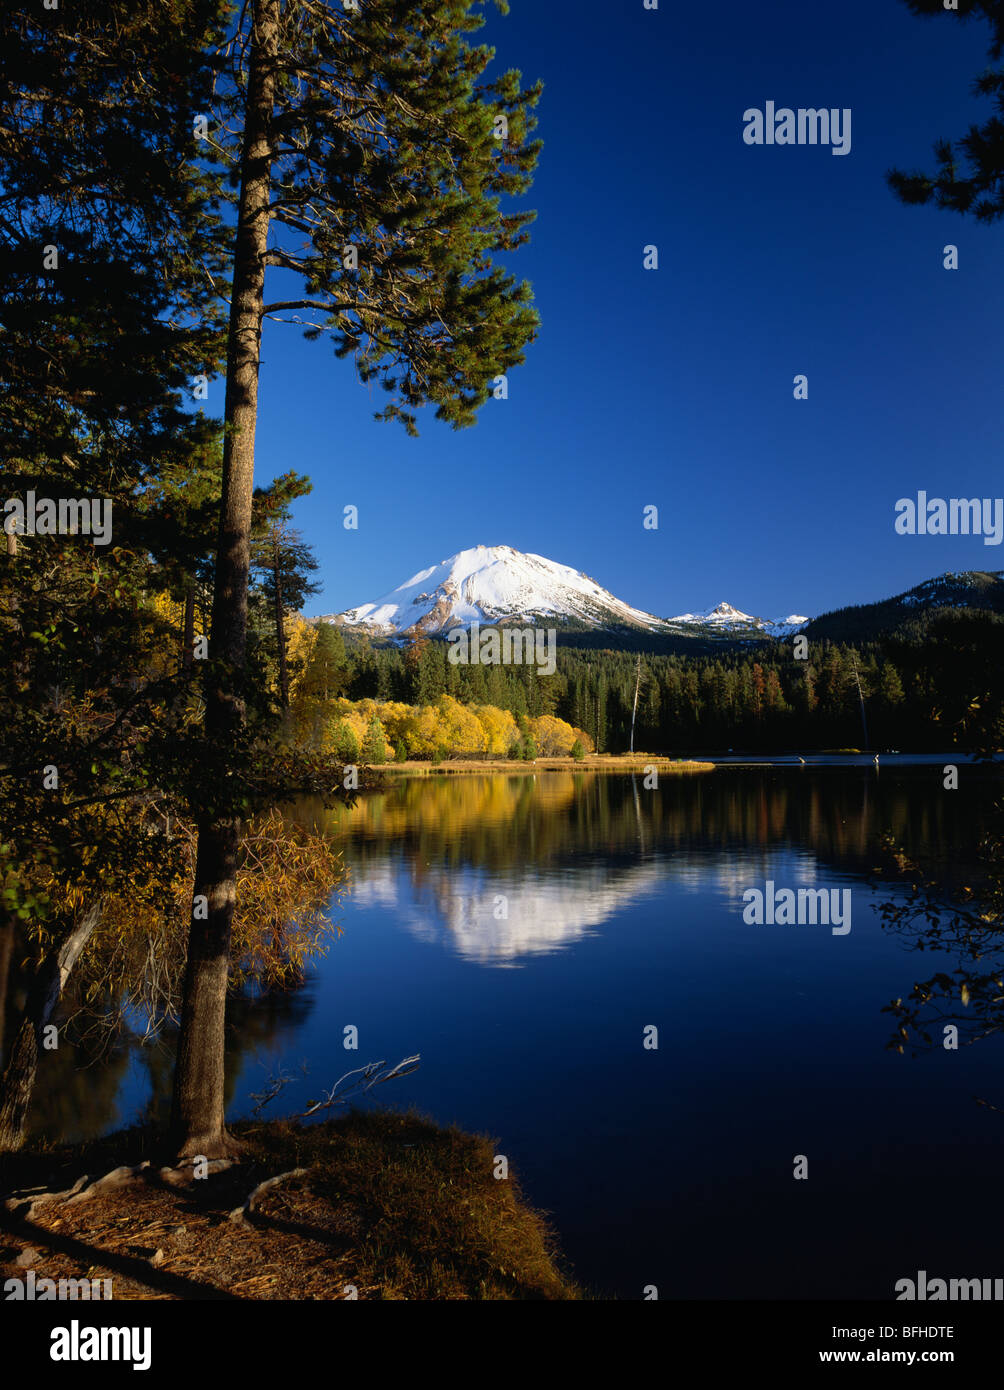 Mount Lassen and Manzanita Lake with fall colors and trees Lassen Volcanic National Park, Northern California USA - Stock Image